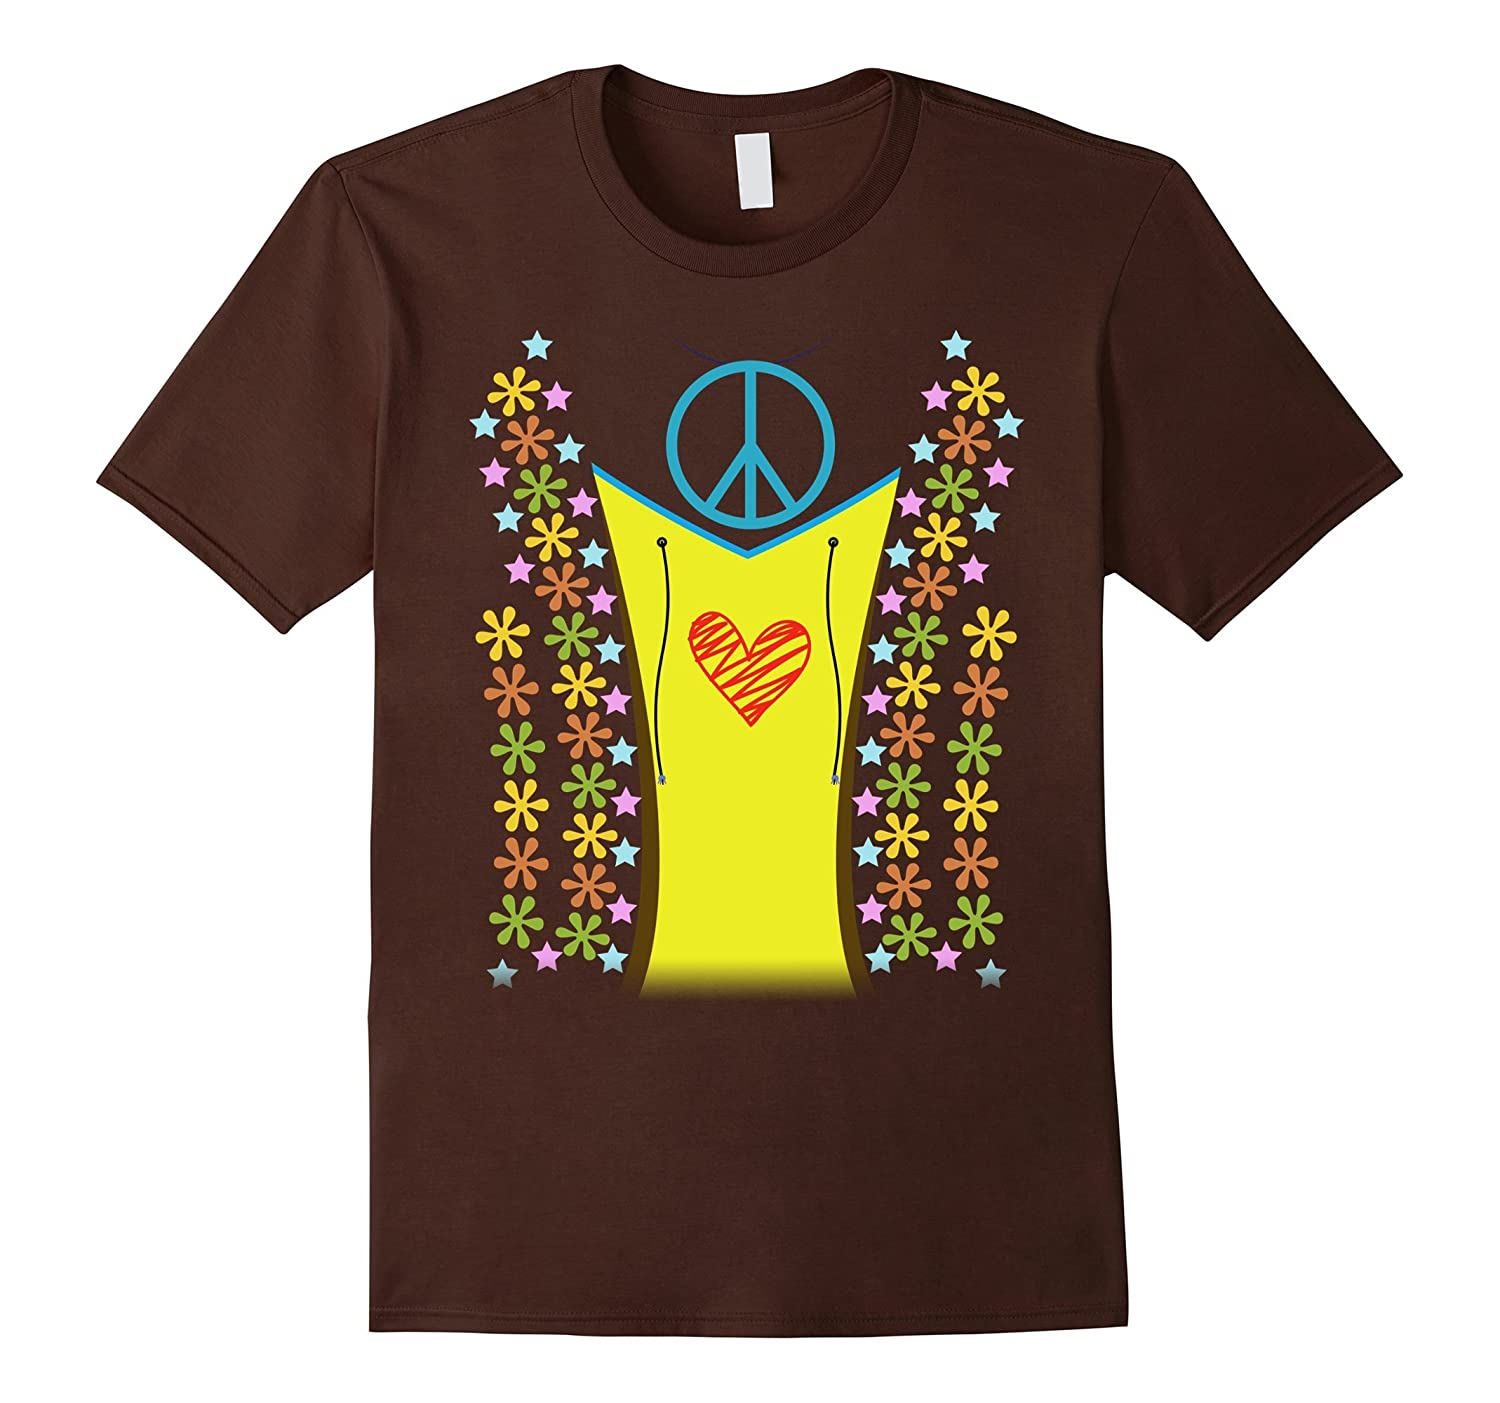 1960s Hippie Costume Shirt Halloween 1970s-TJ